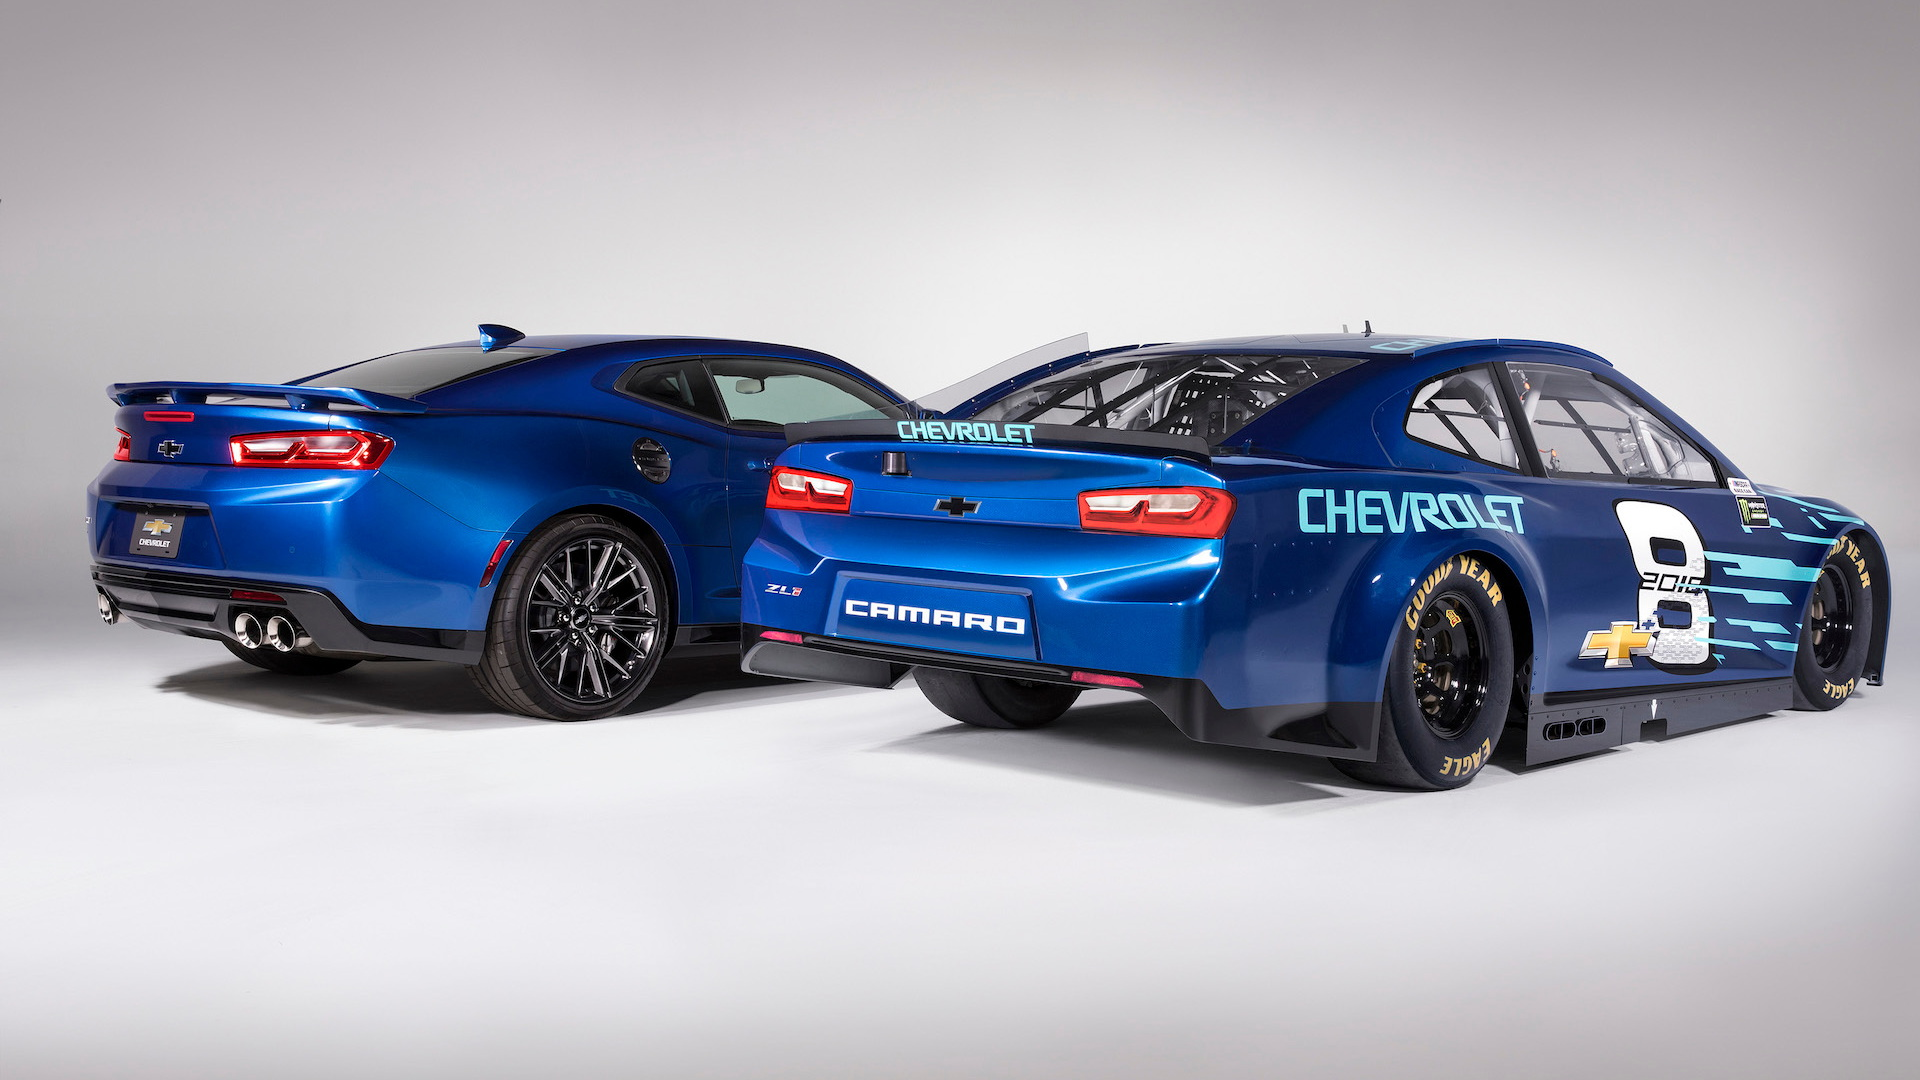 2018 Chevrolet Camaro ZL1 NASCAR race car